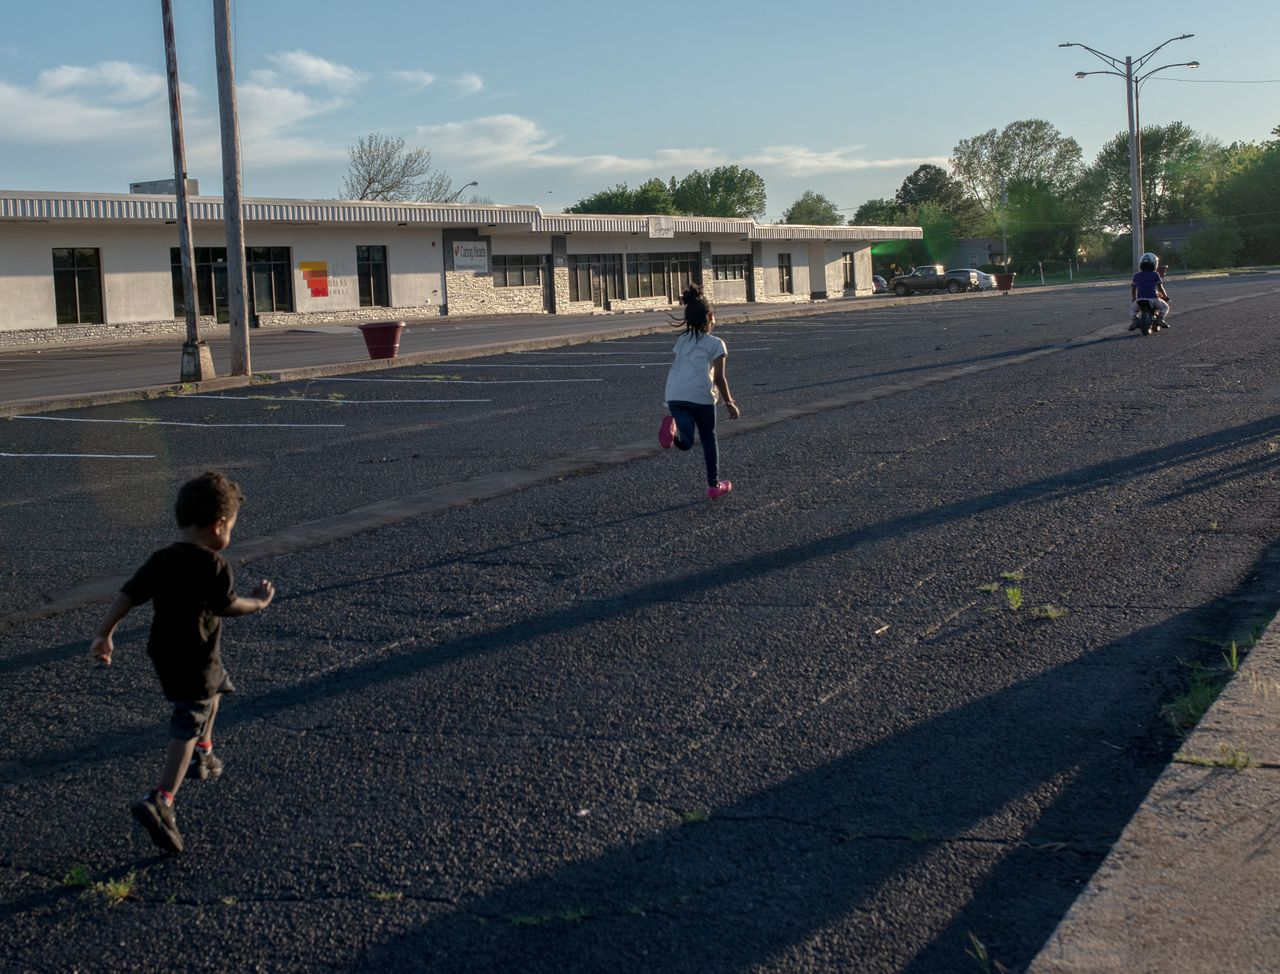 Children play in front of the Gibbs Shopping Center in North Tulsa.